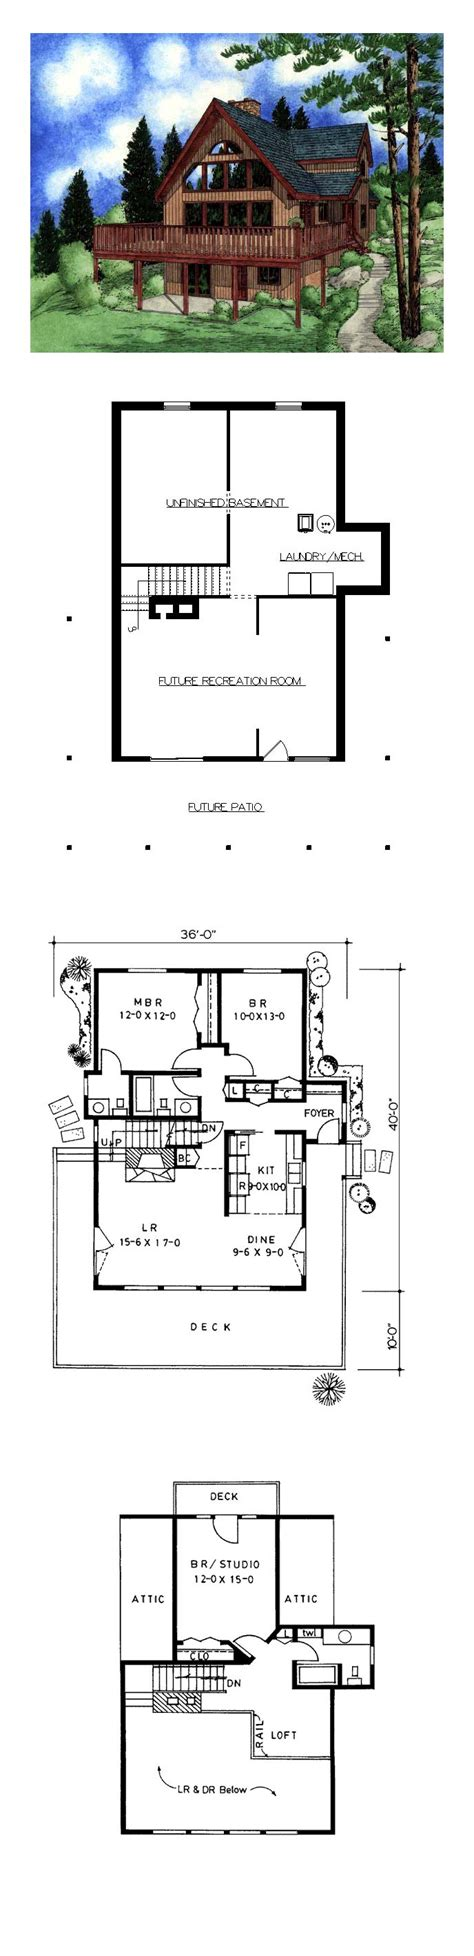 hillside floor plans the 49 best images about hillside home plans on house plans fireplaces and decks